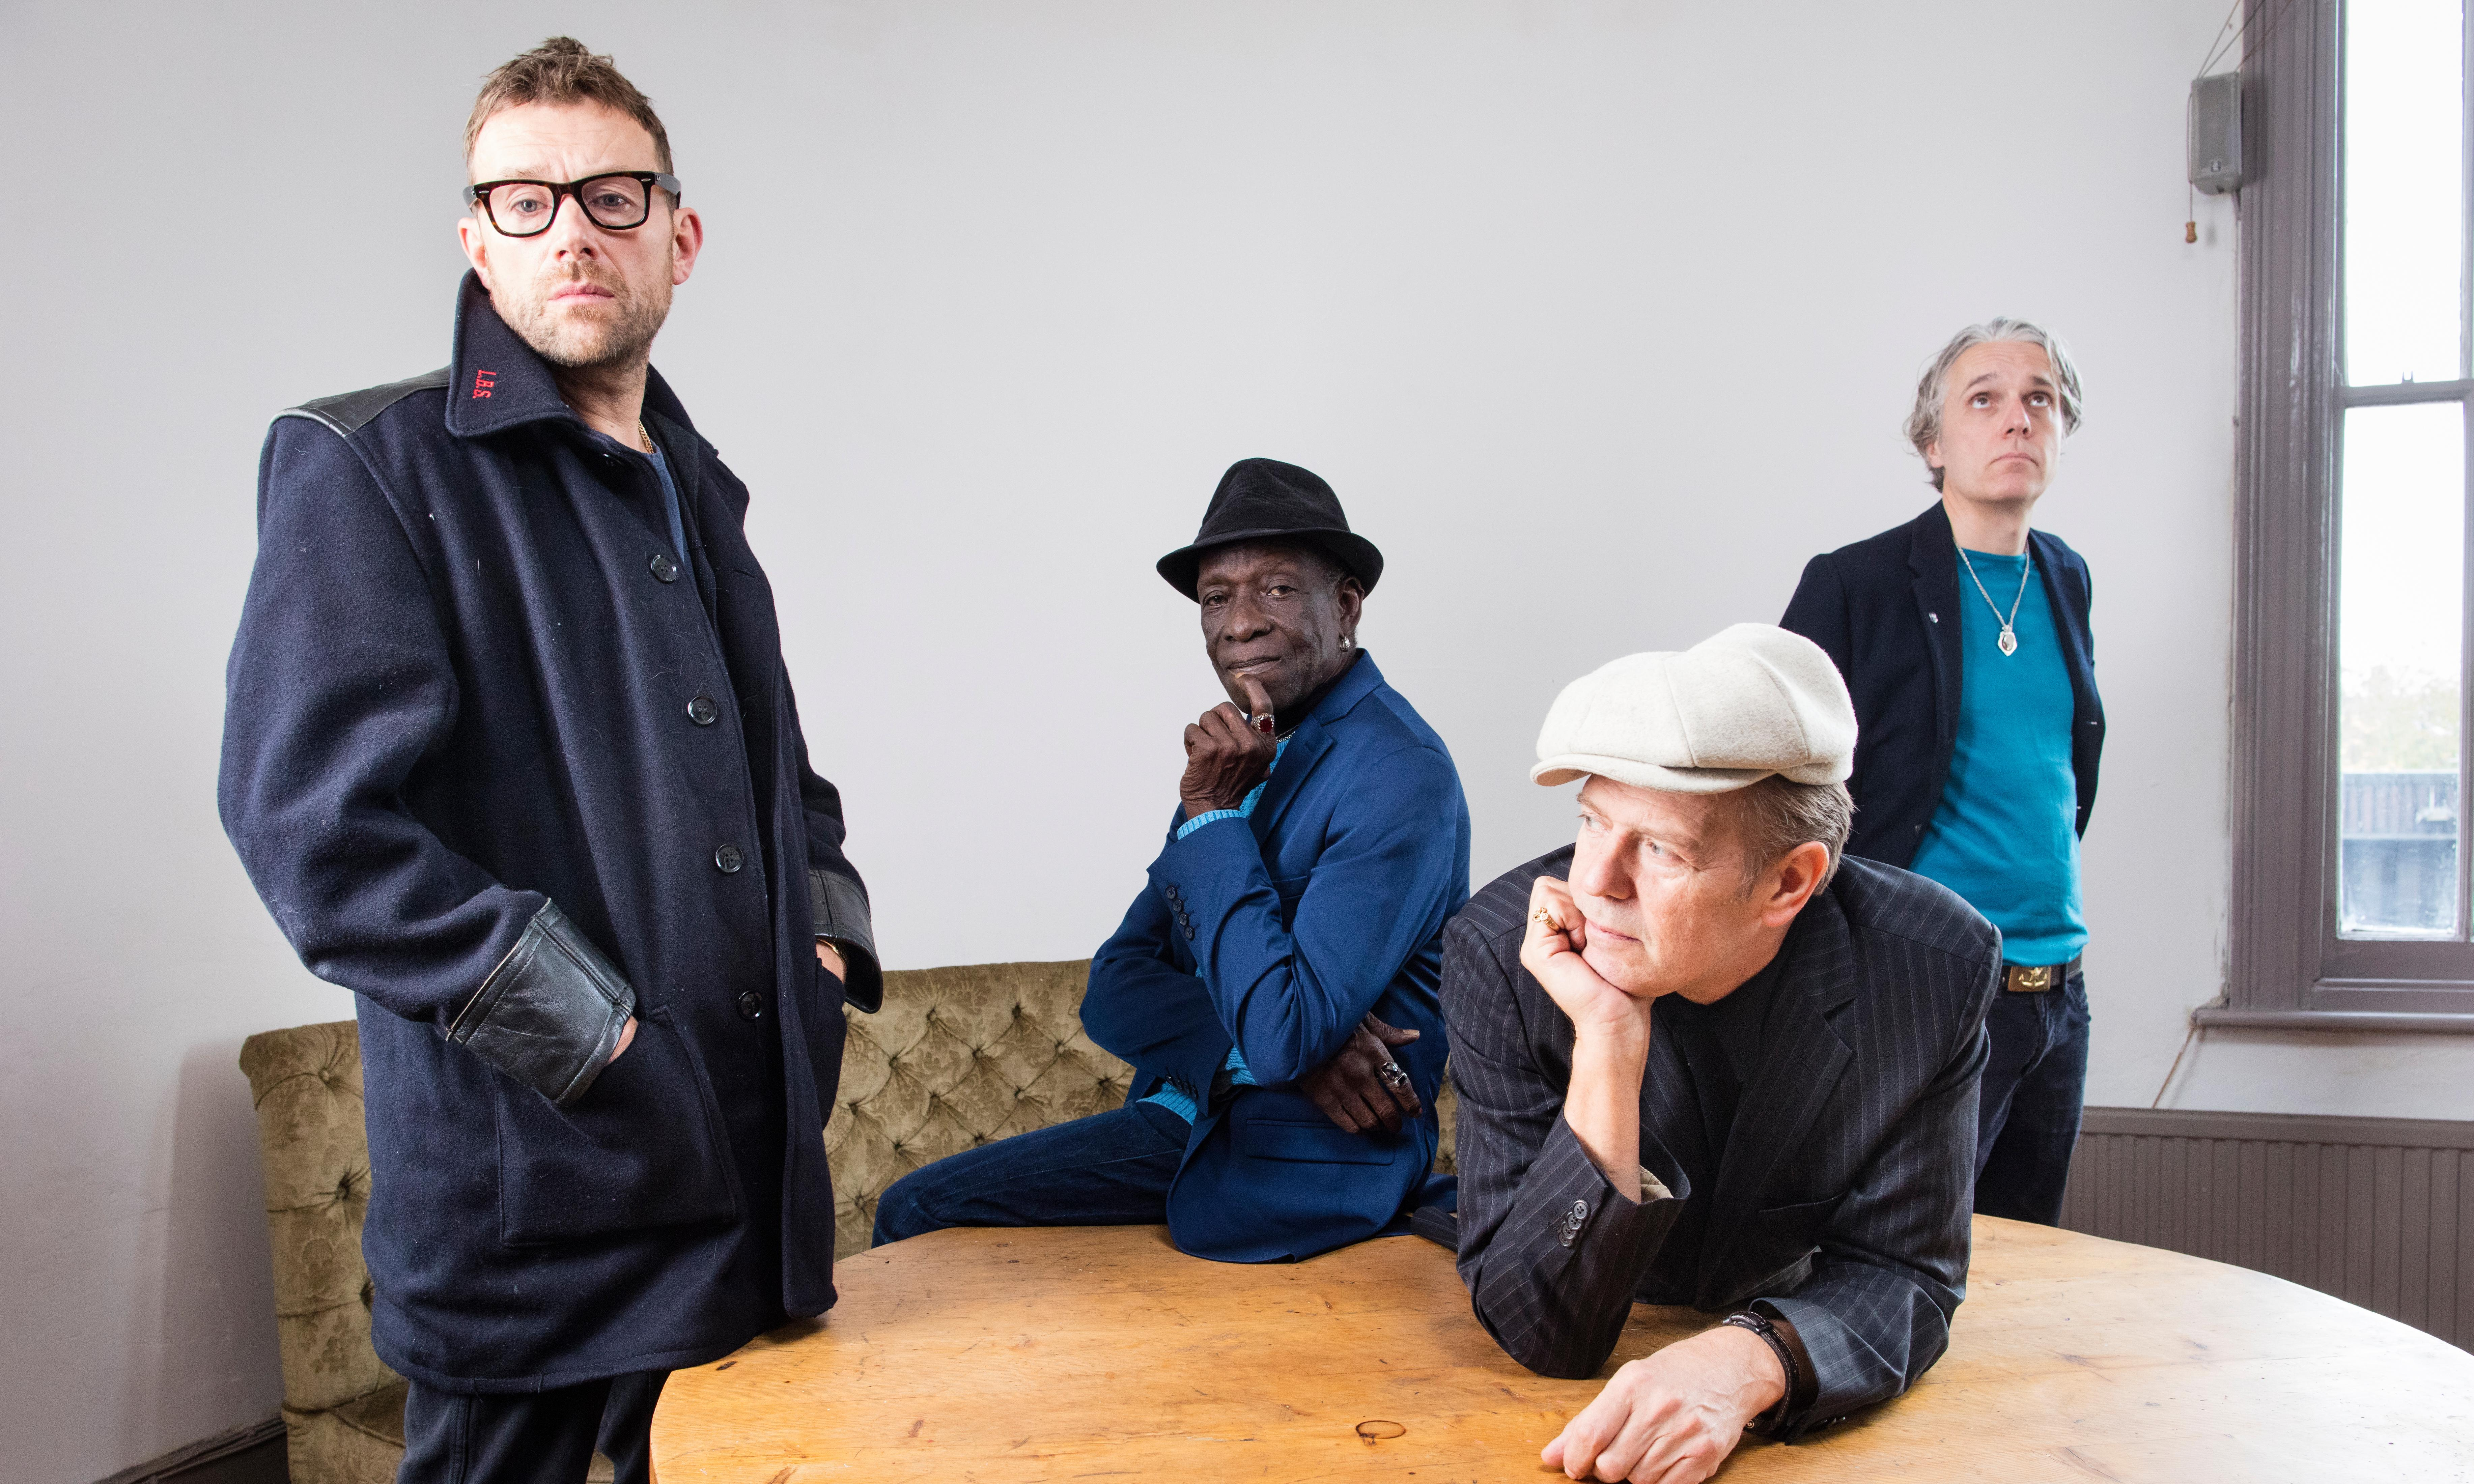 The Good, the Bad & the Queen: Merrie Land review – Damon Albarn's scattergun sketch of Britain